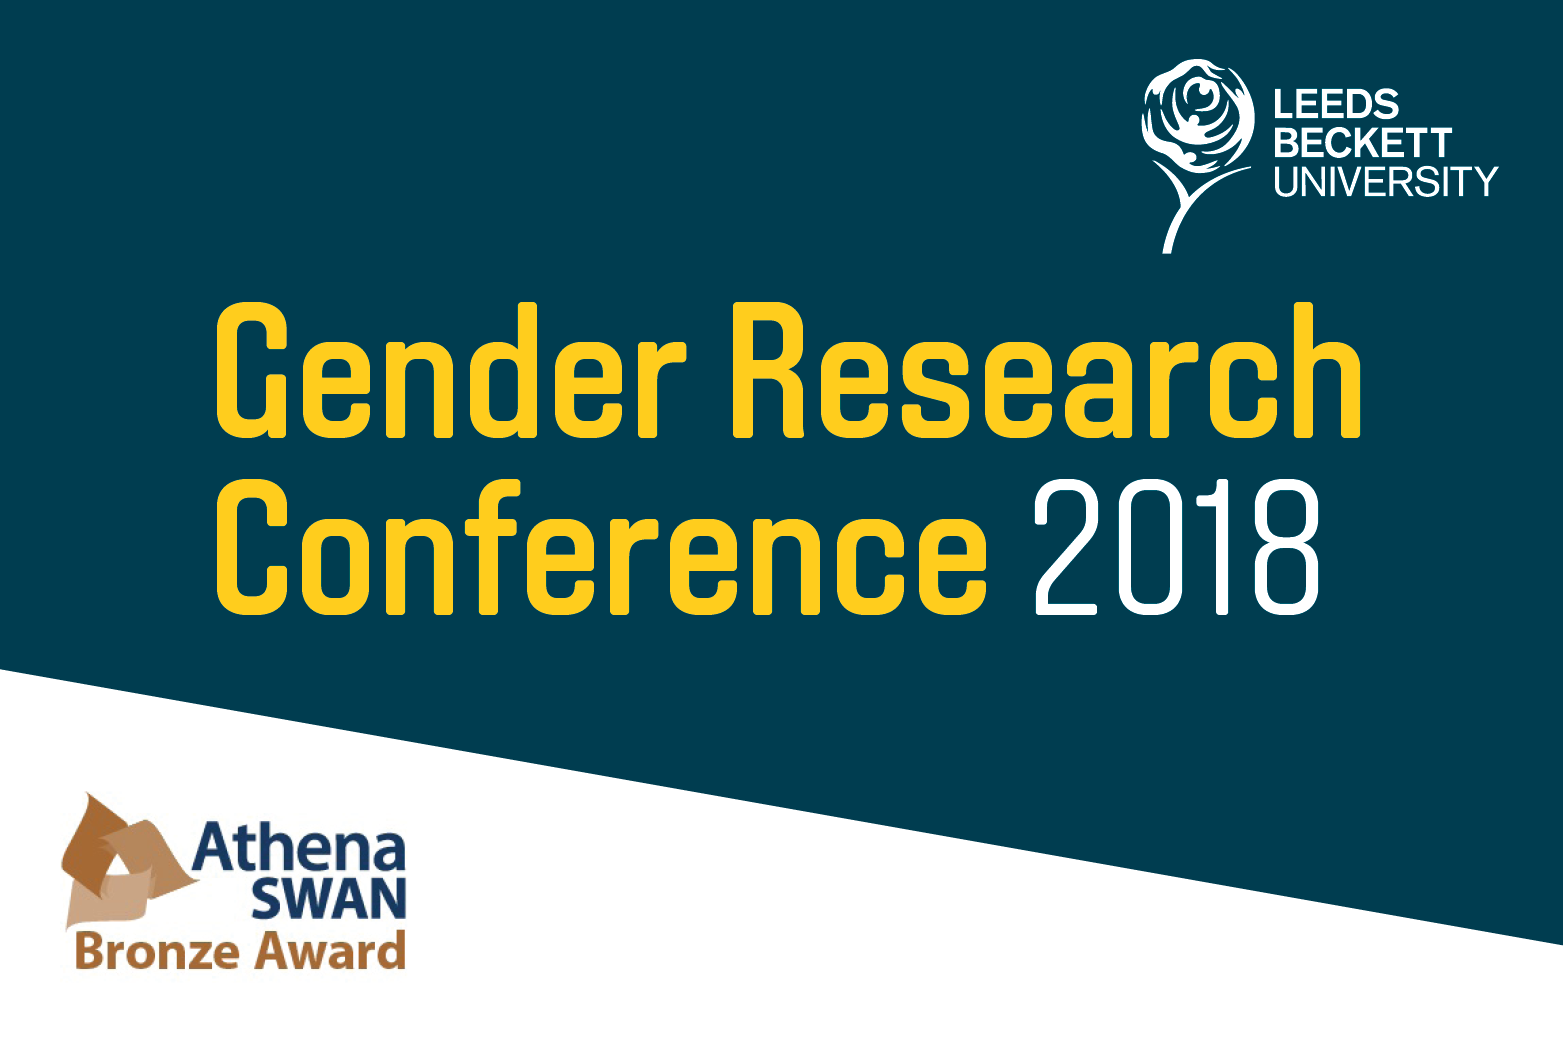 Gender Research Conference 2018